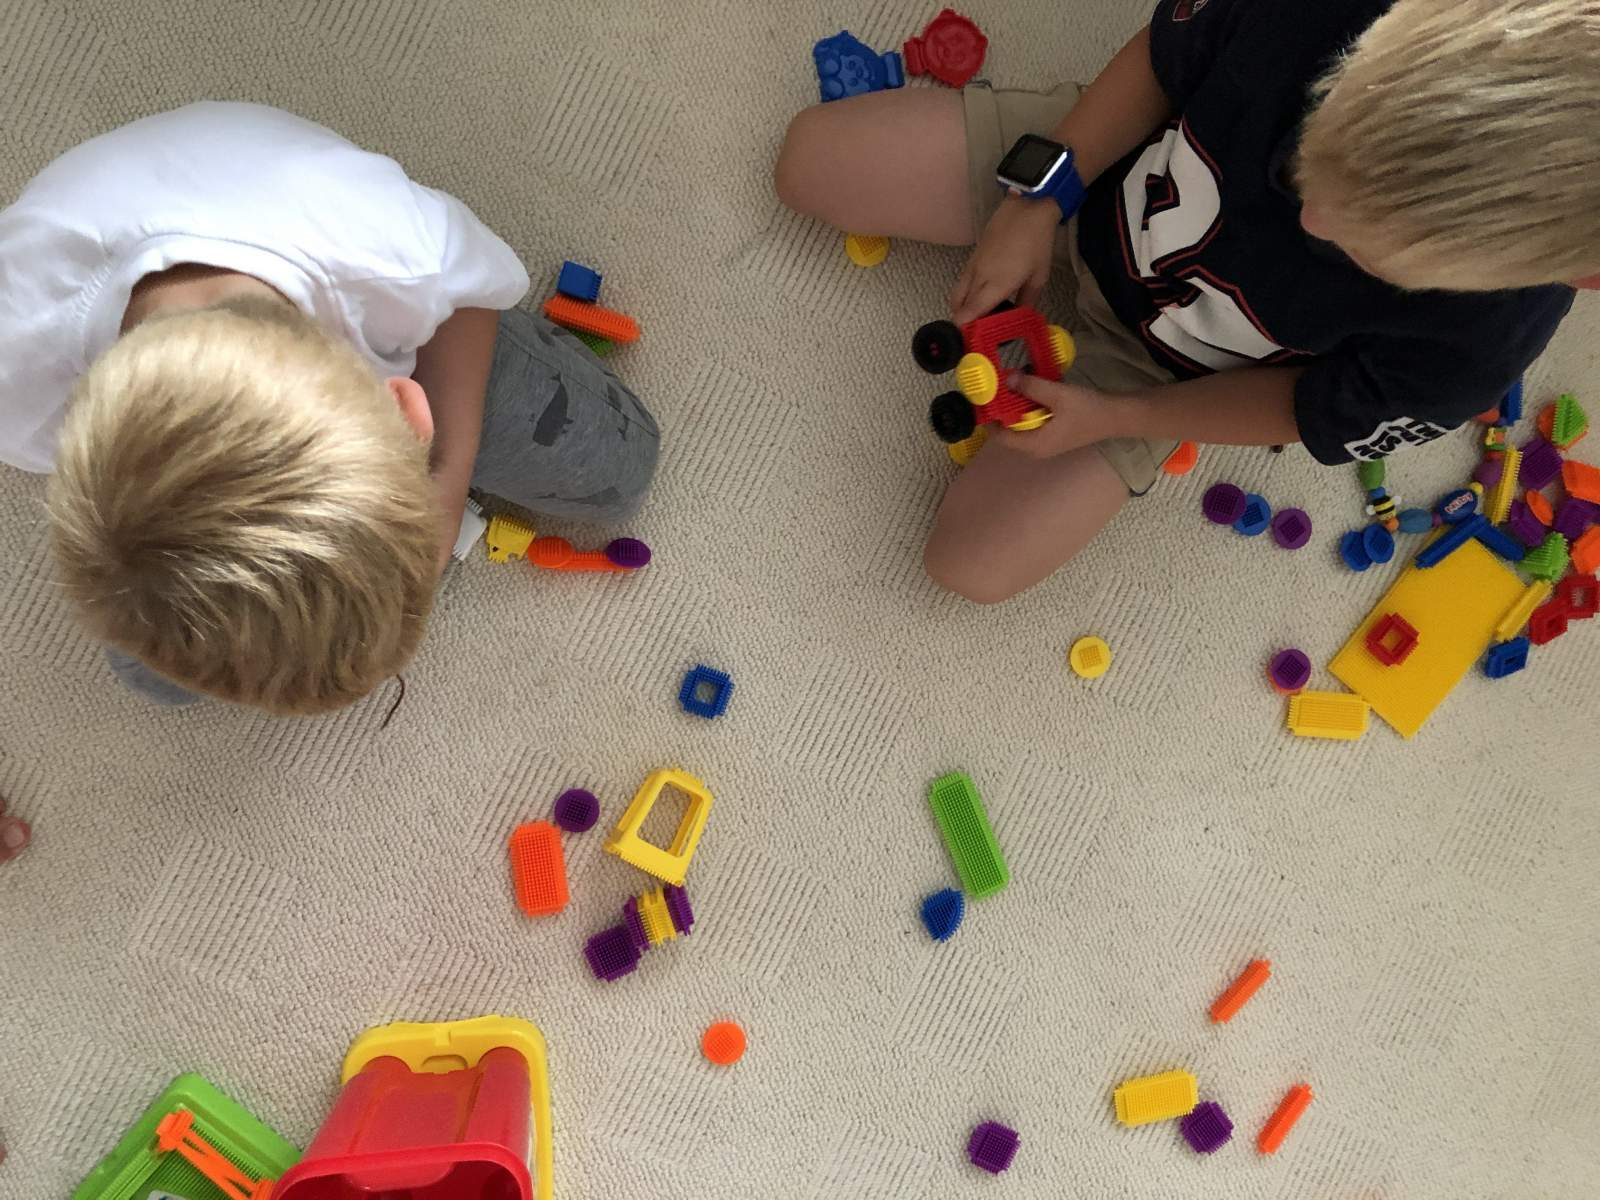 stickle bricks toys on floor two boys playing